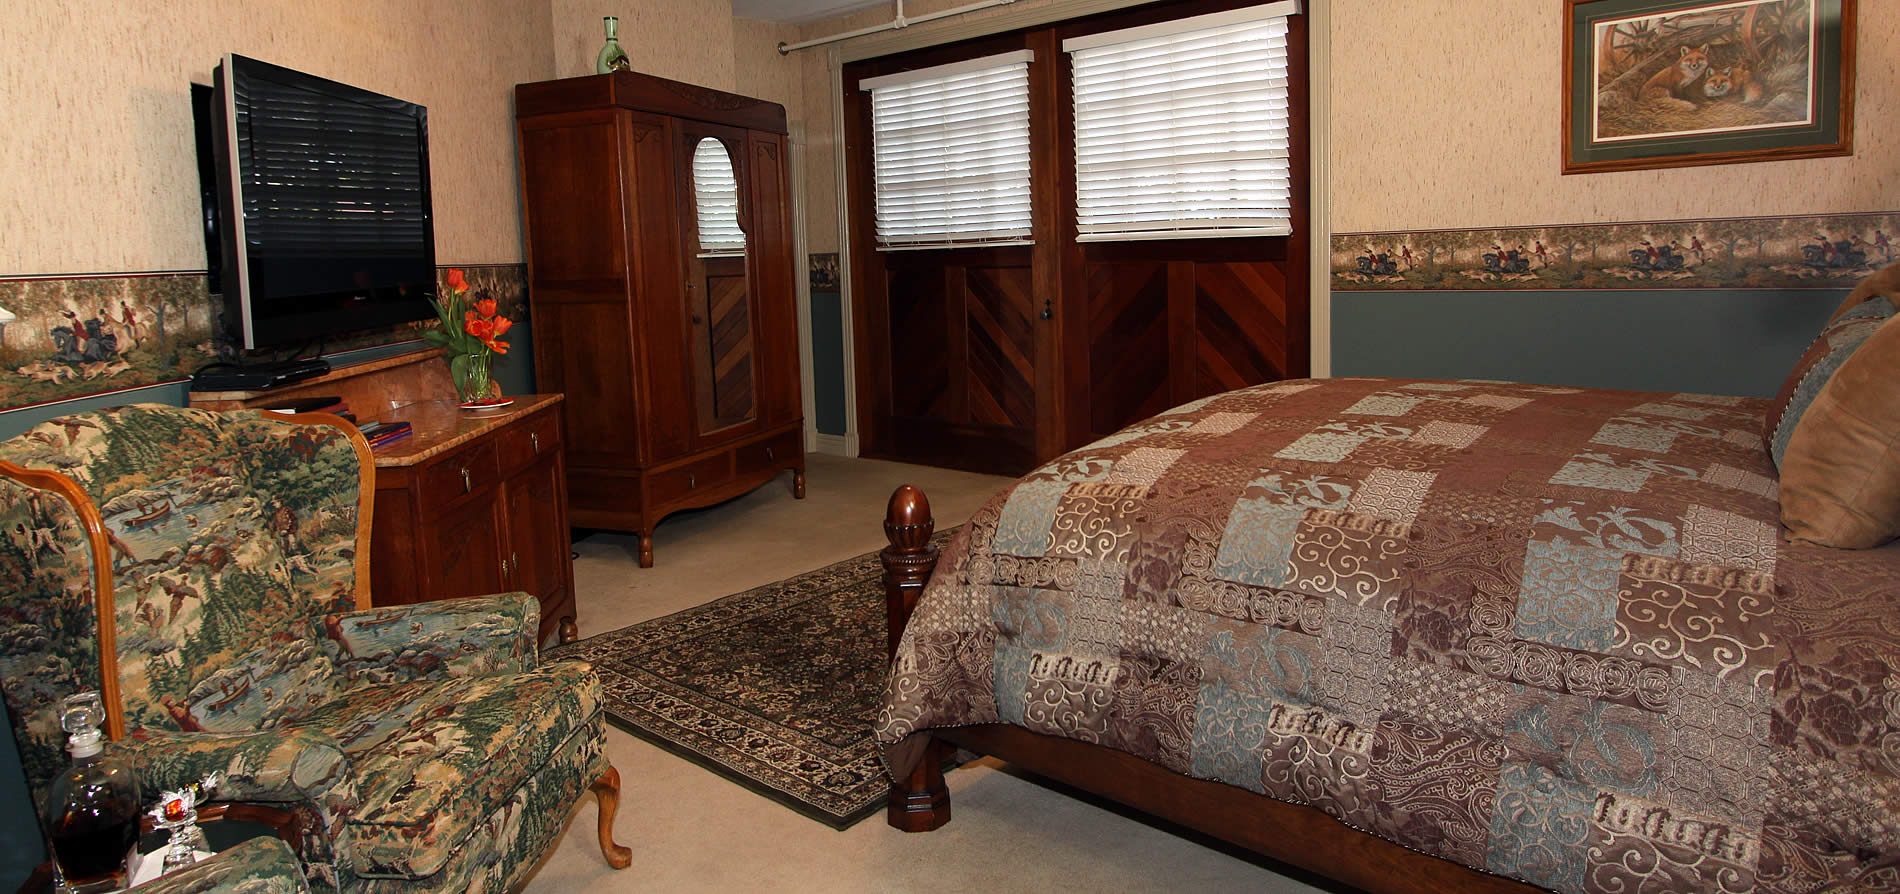 fox's den guest room bed, tv and large wooden doors